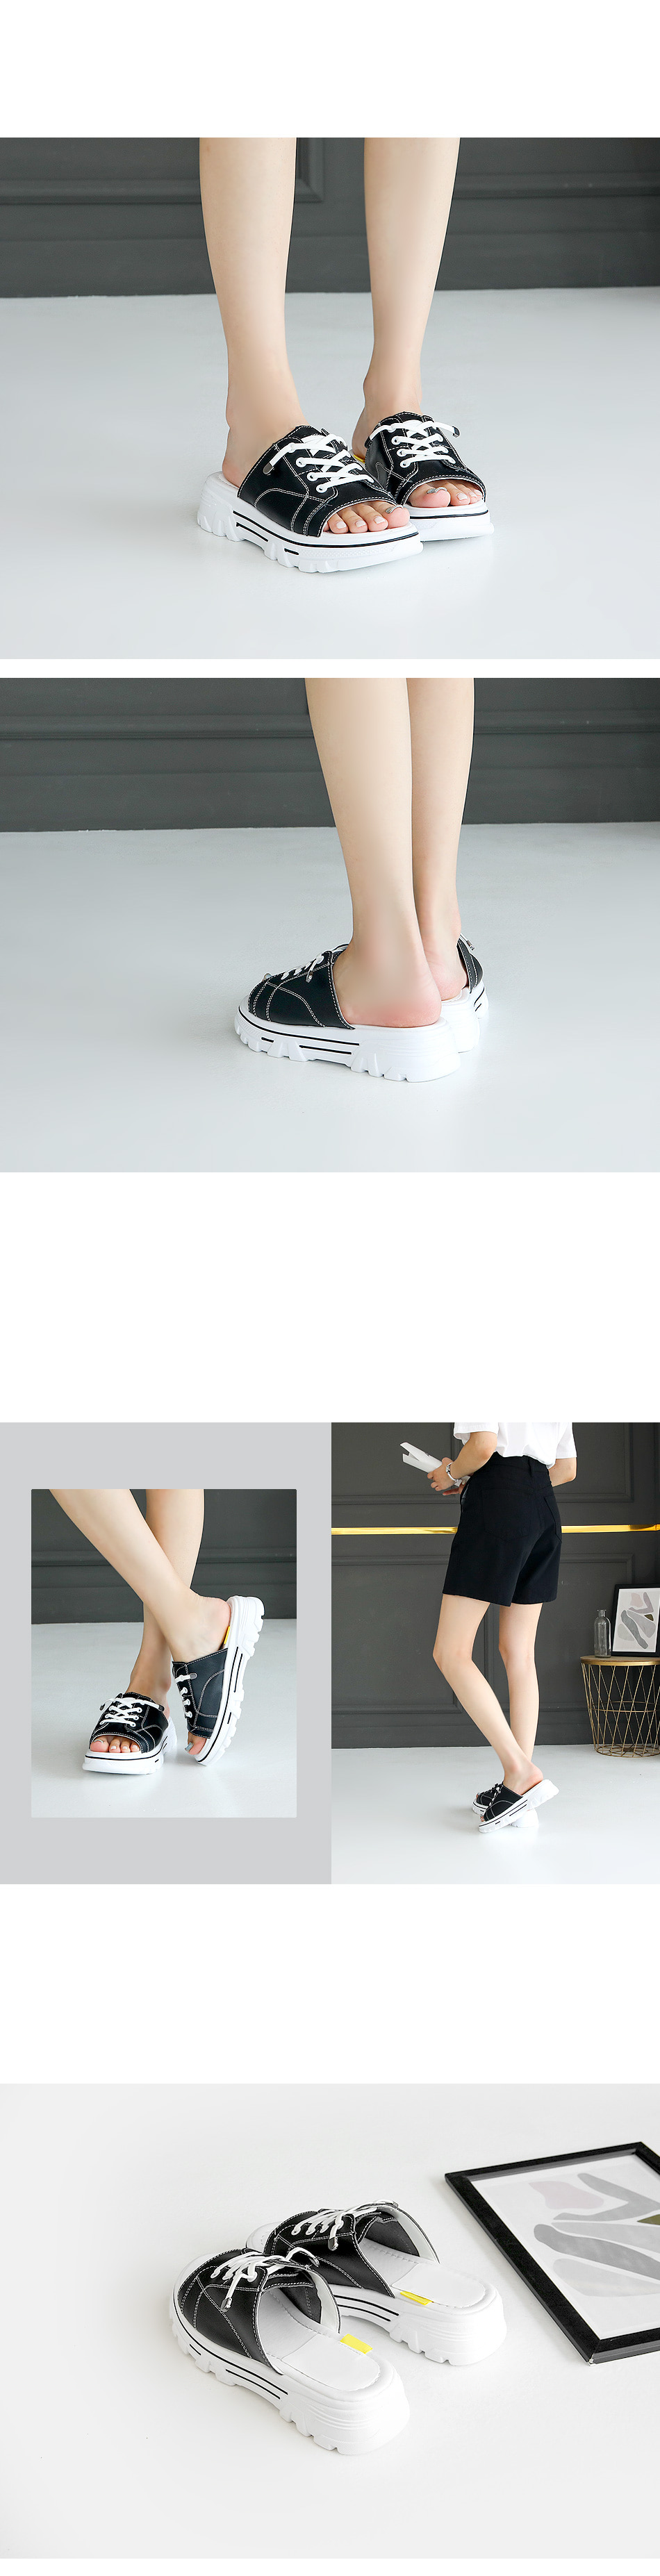 LEVOLT sneakers sneakers whole slippers 4cm